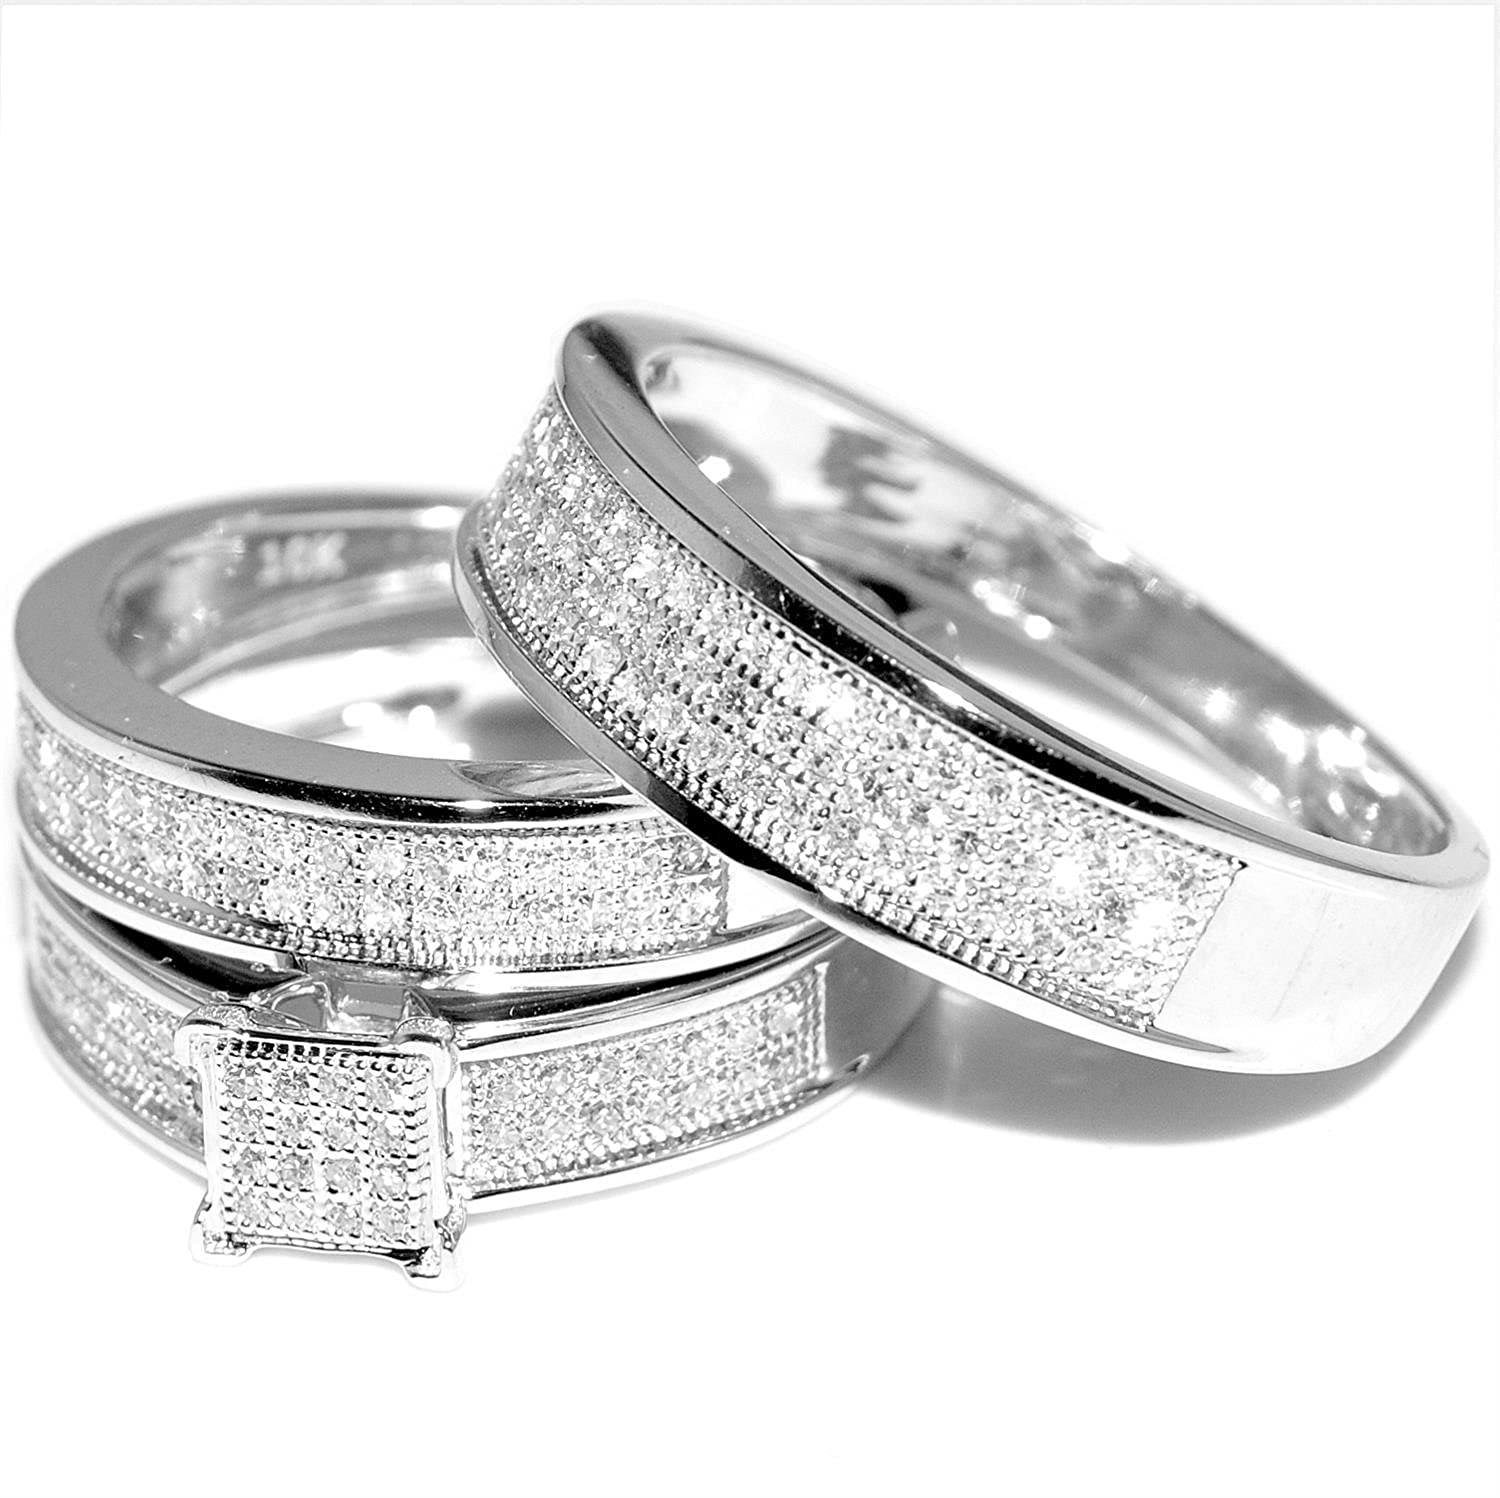 men bands women dp wedding com hers s engagement and sterling womens his band stainless rings titanium jewelry silver set size amazon steel bridal sets